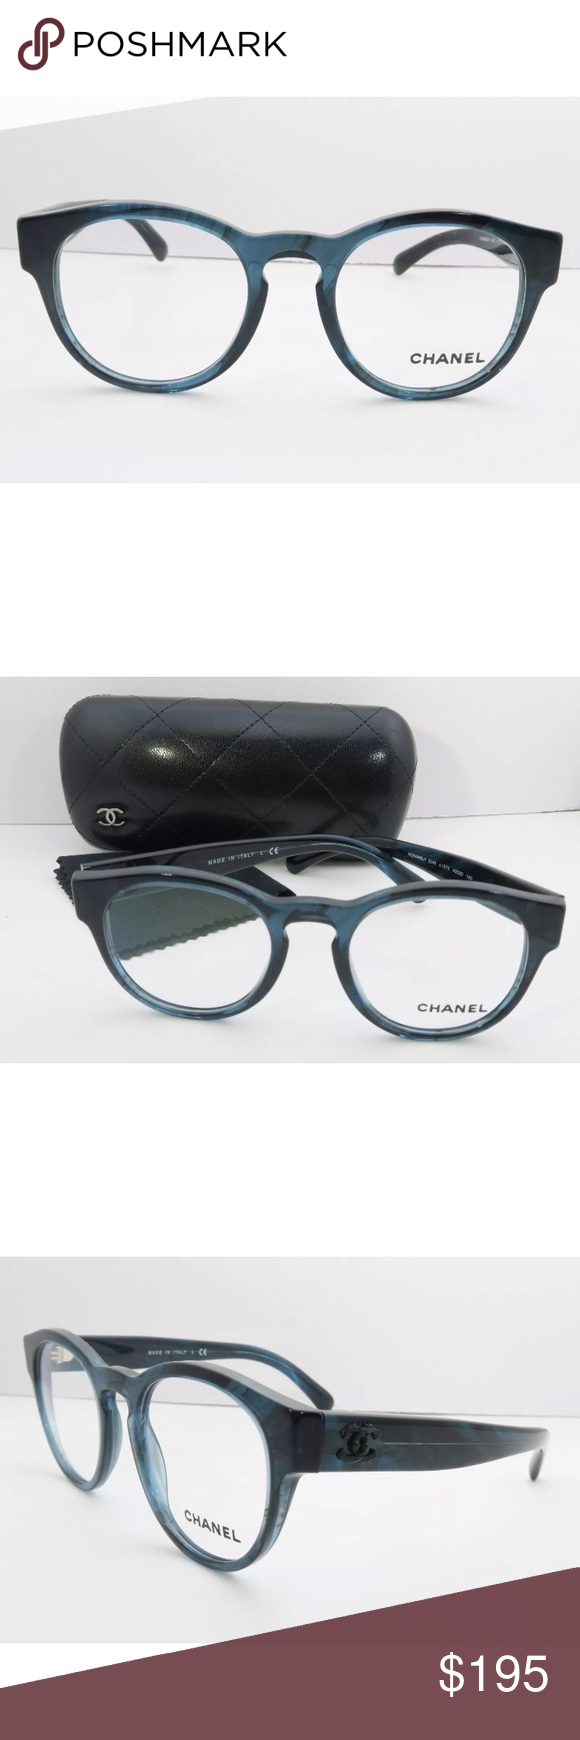 f9f0fa41dee8 Chanel Eyeglasses 3346 Blue Frame New with clear lens Comes with Chanel  case Authentic CHANEL Accessories Glasses